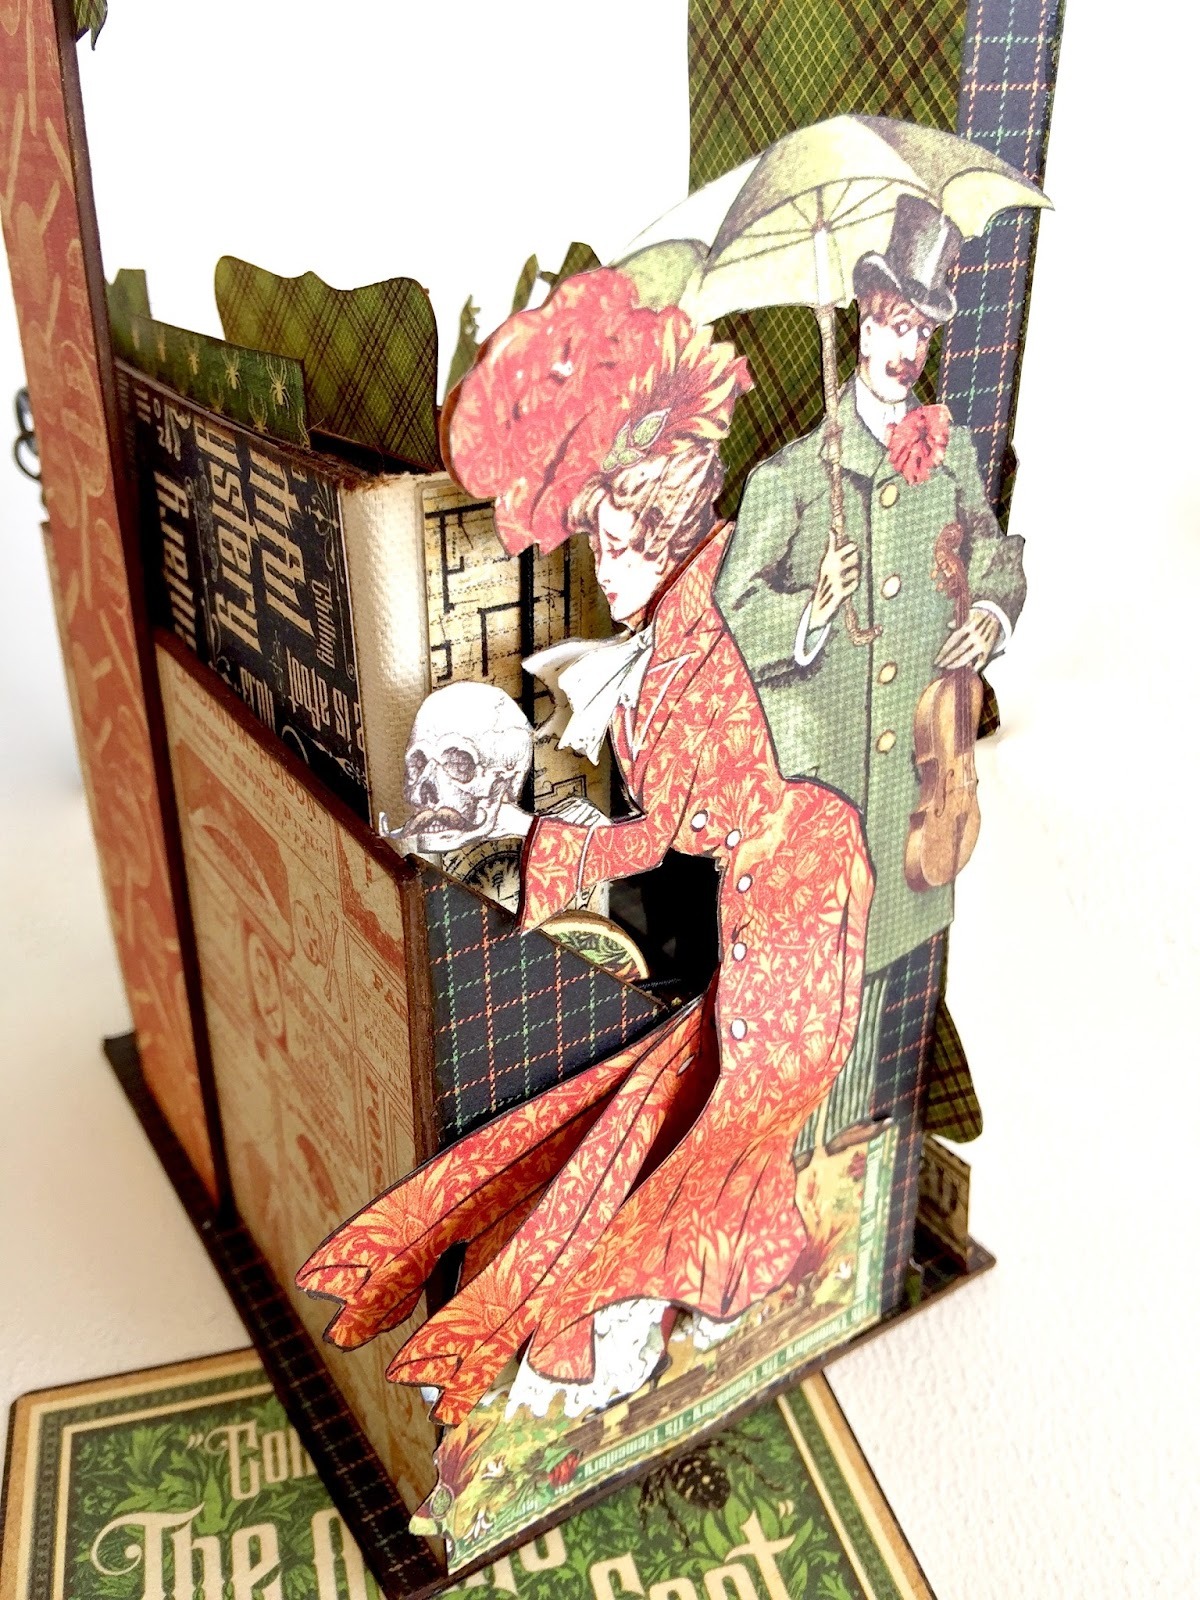 Stand and Mini Album Master Detective by Marina Blaukitchen Product by Graphic 45 photo 3.jpg